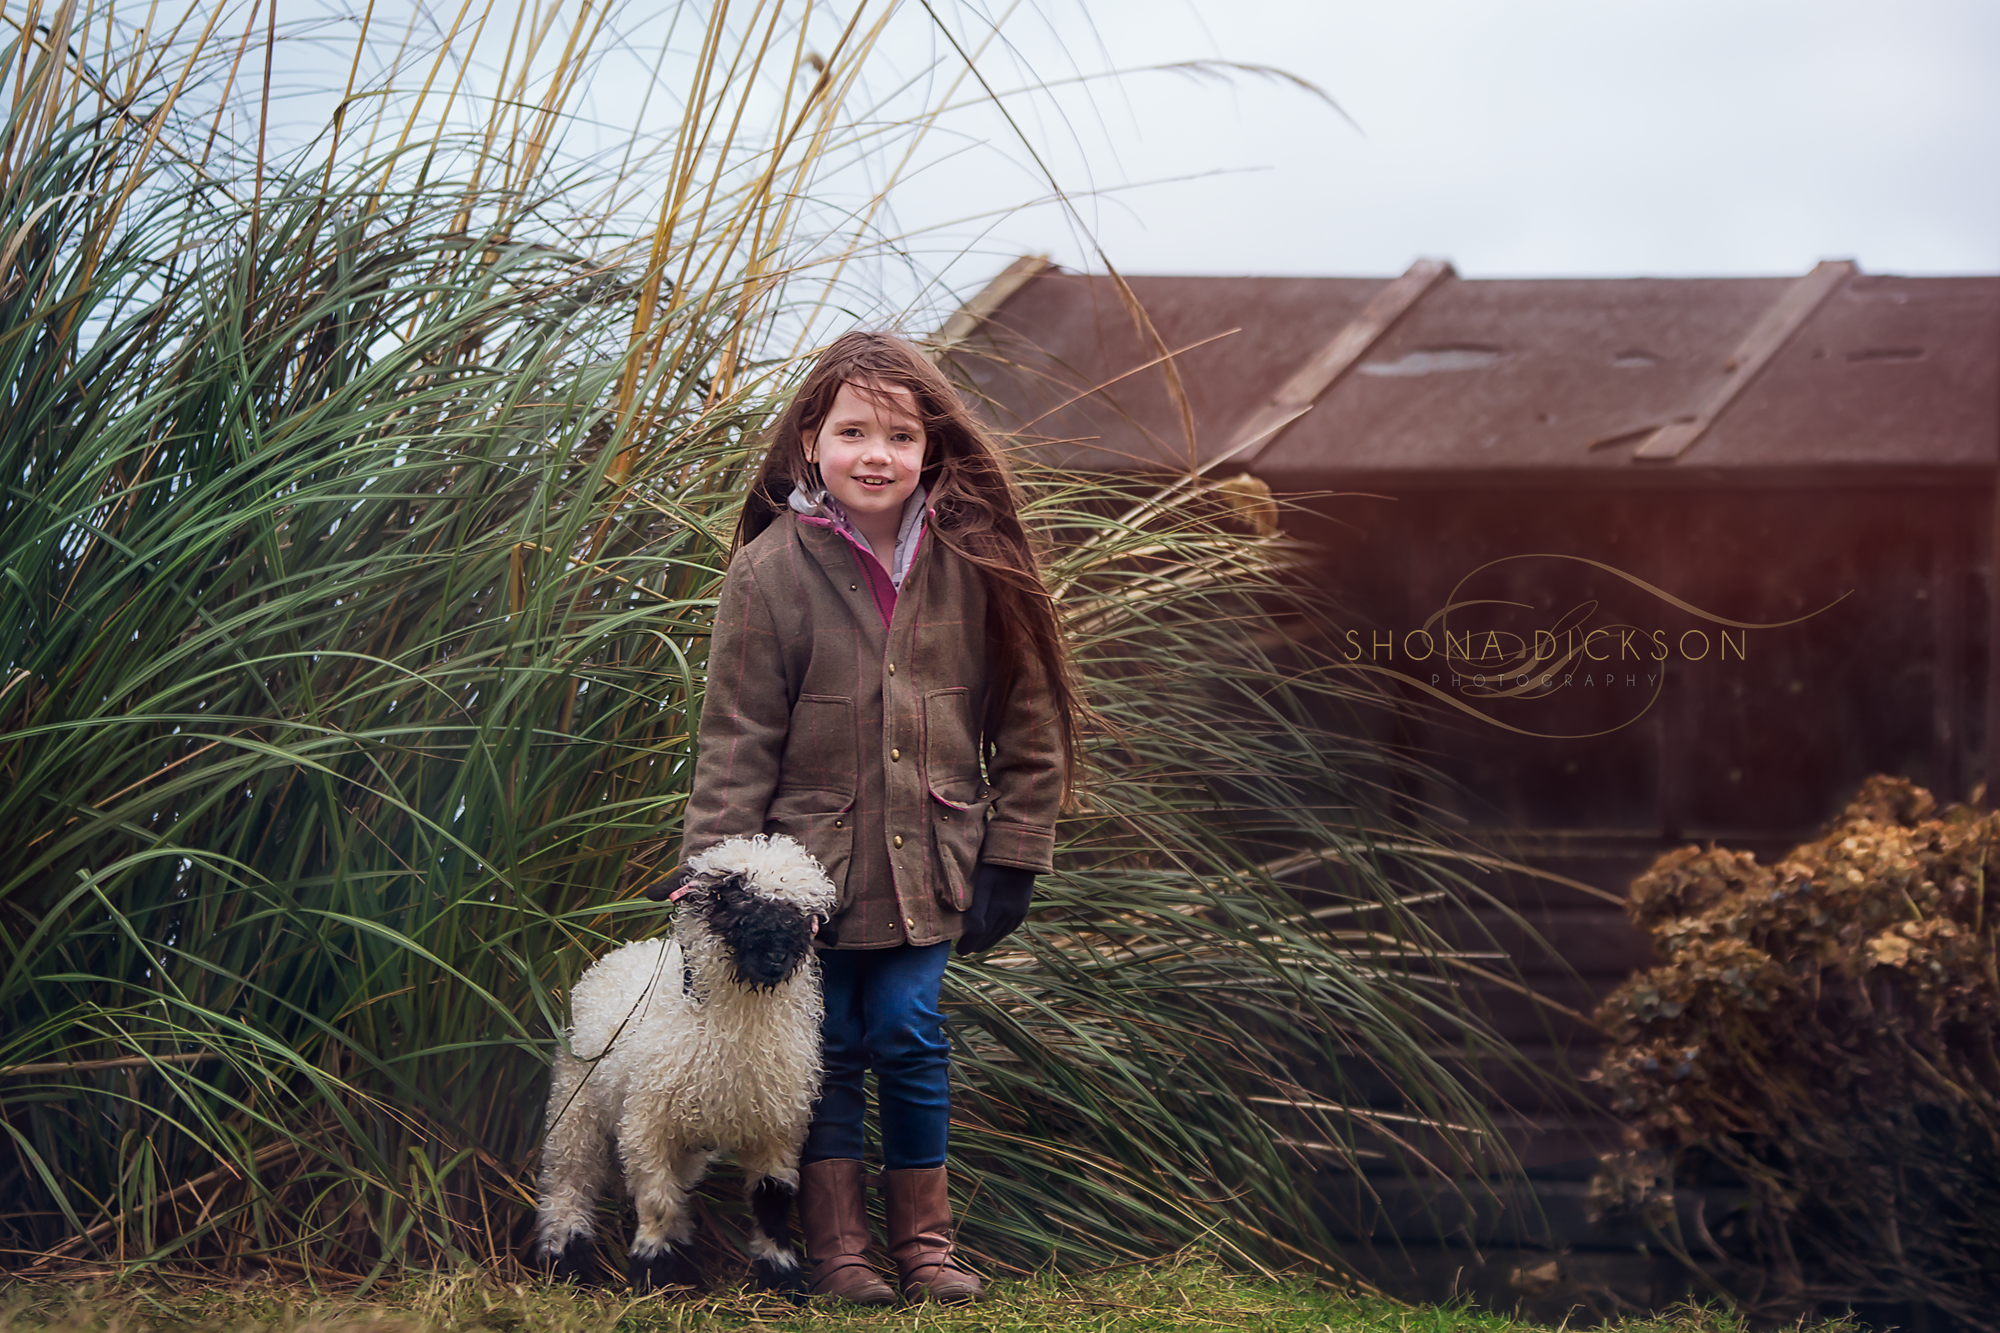 shona dickson photography, photographer dumfries, photographer galloway, pet photography dumfries, p